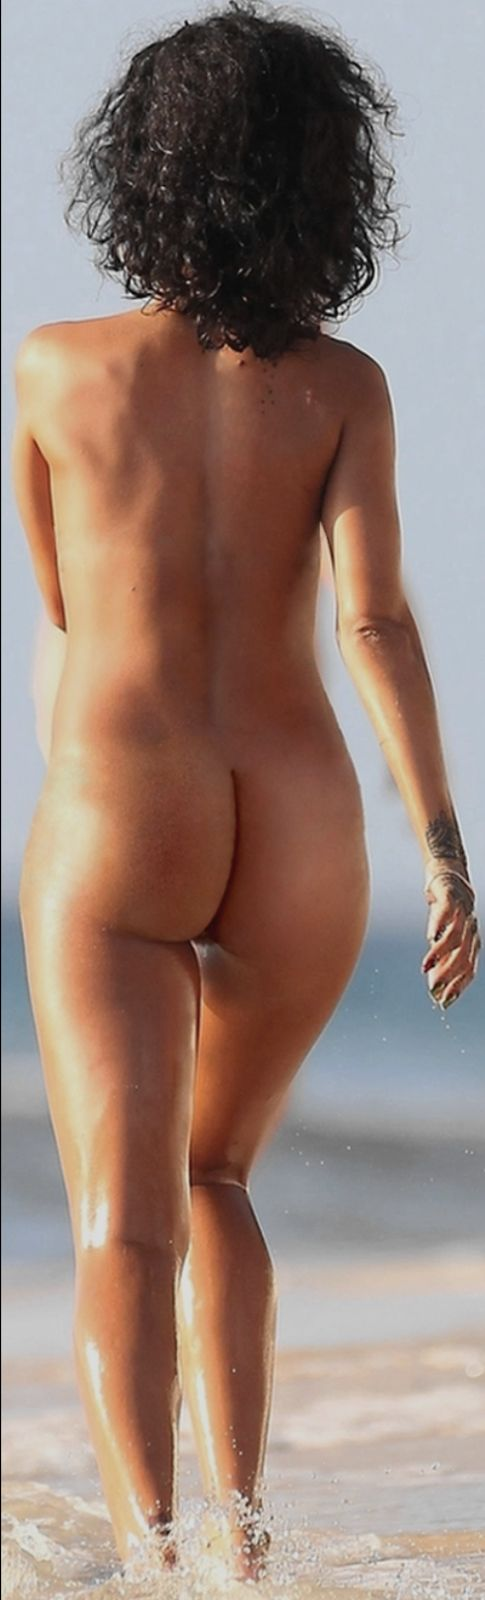 Rihanna ass nude